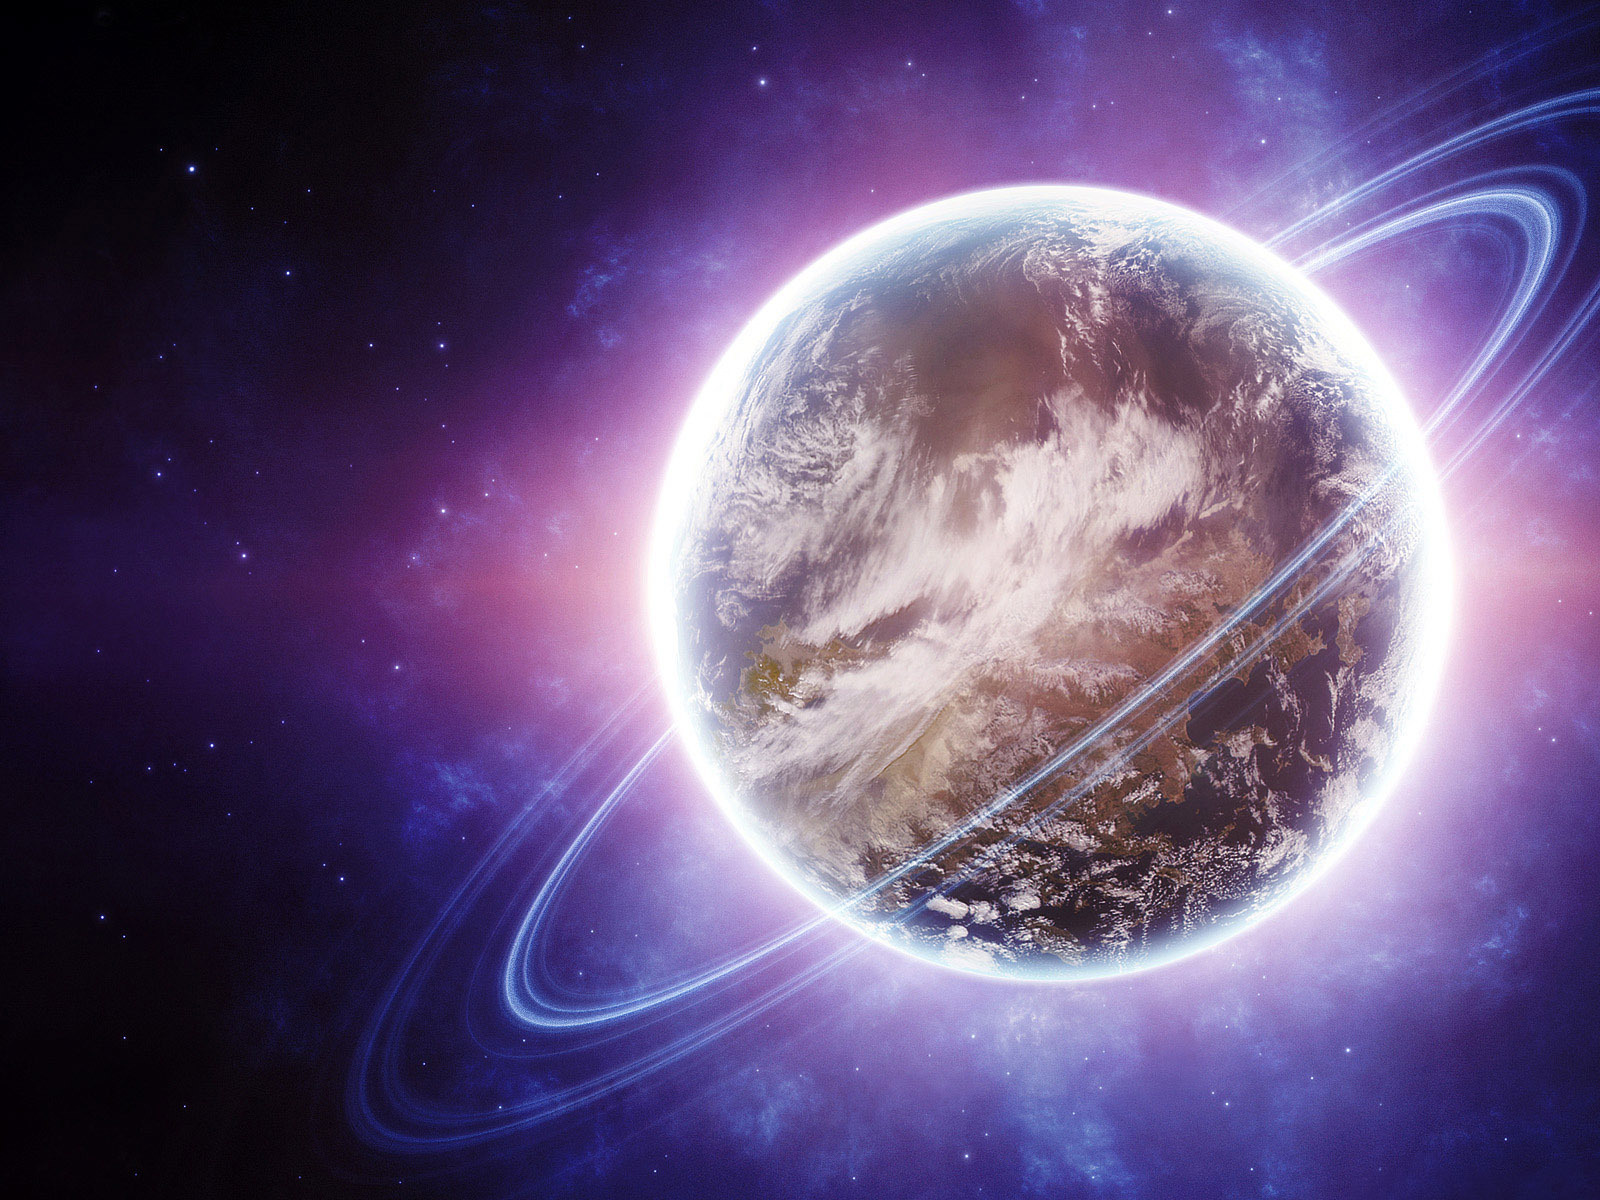 Desktop Backgrounds 4U: Planets